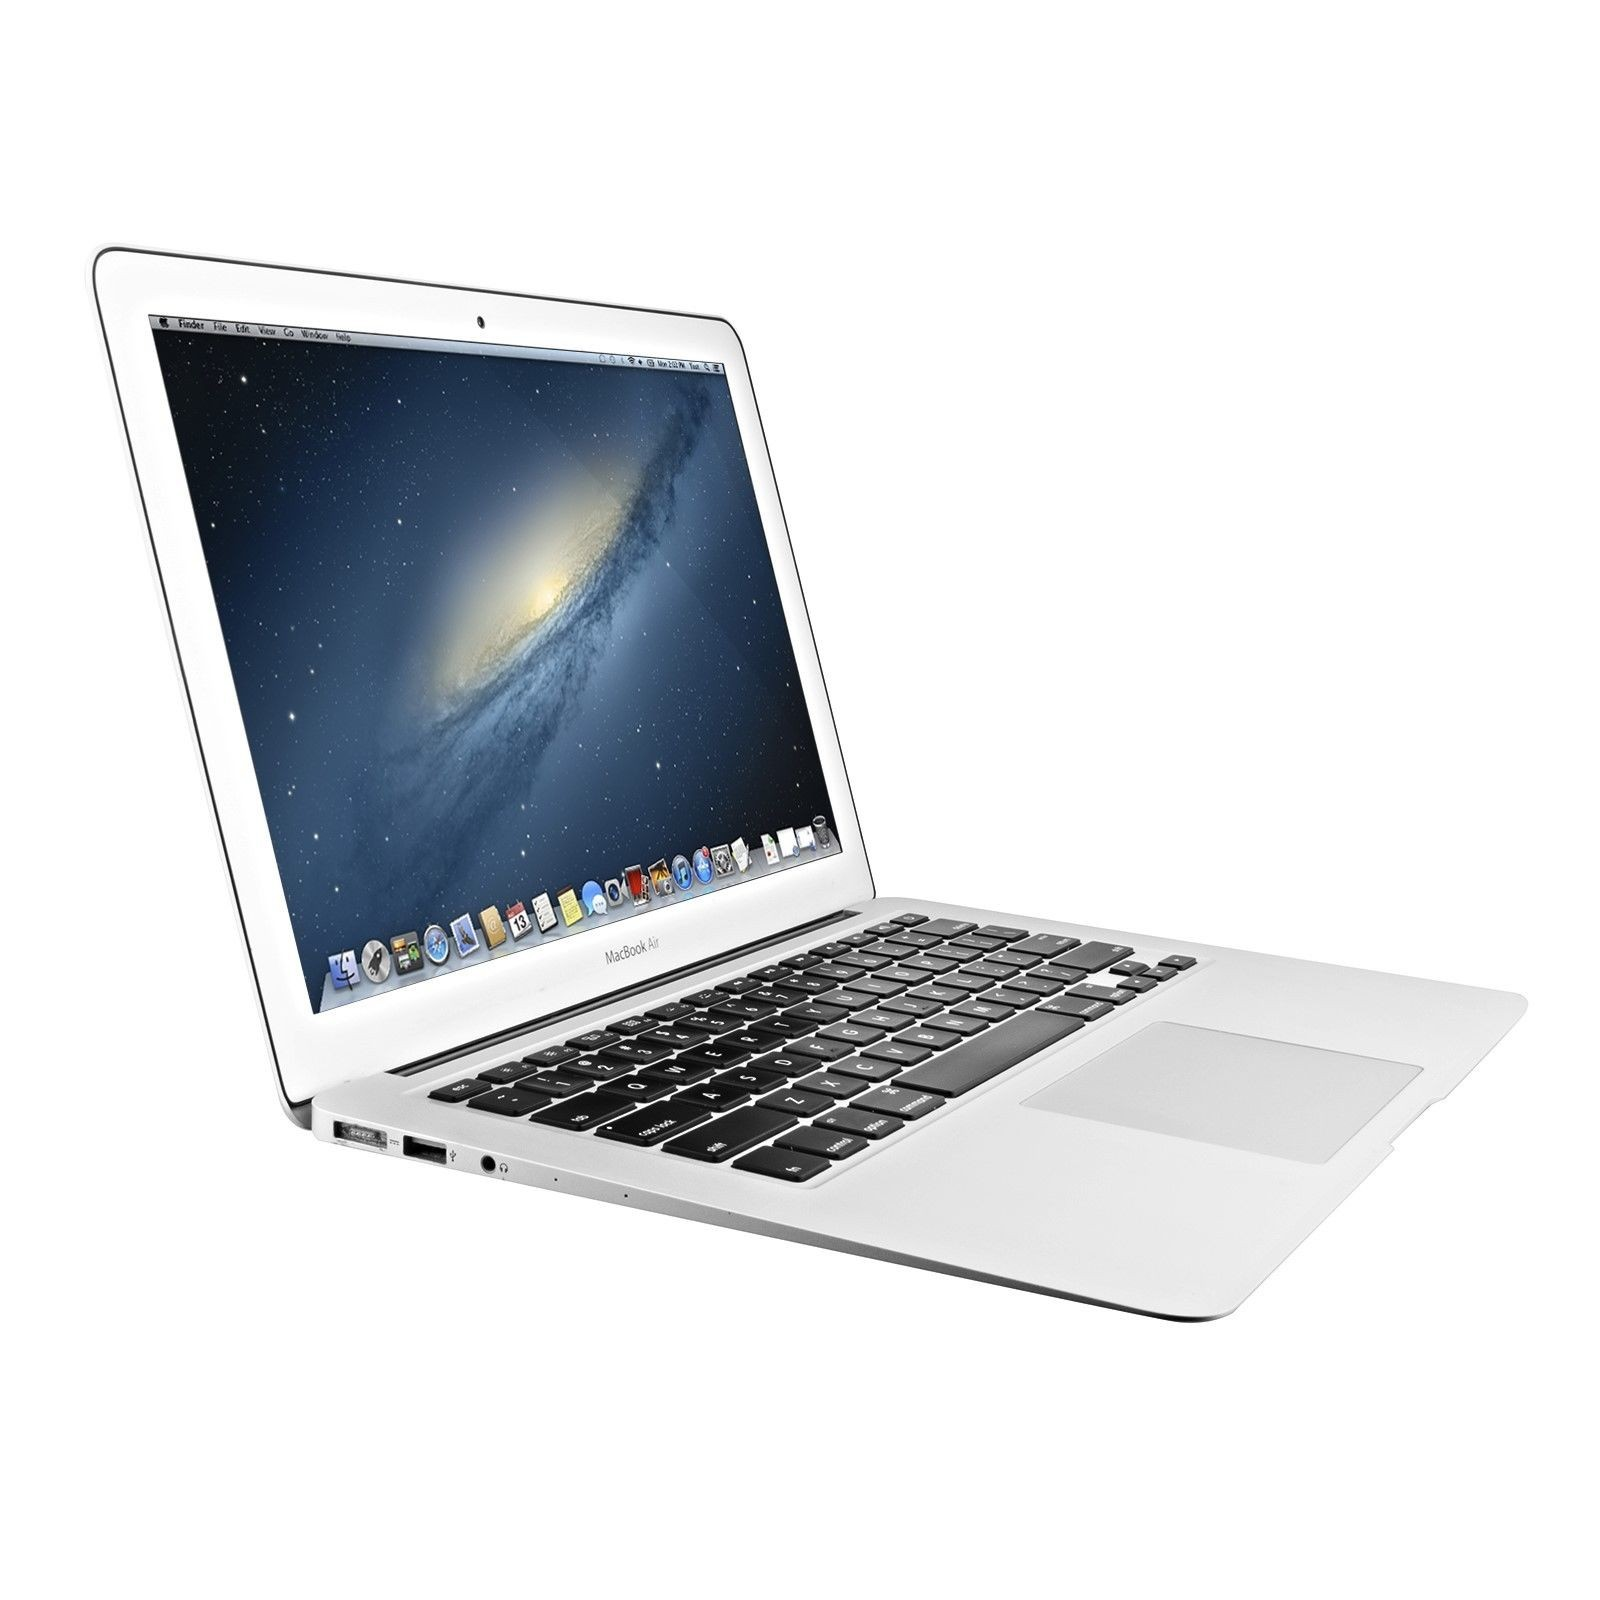 macbook-air-mac968-2011